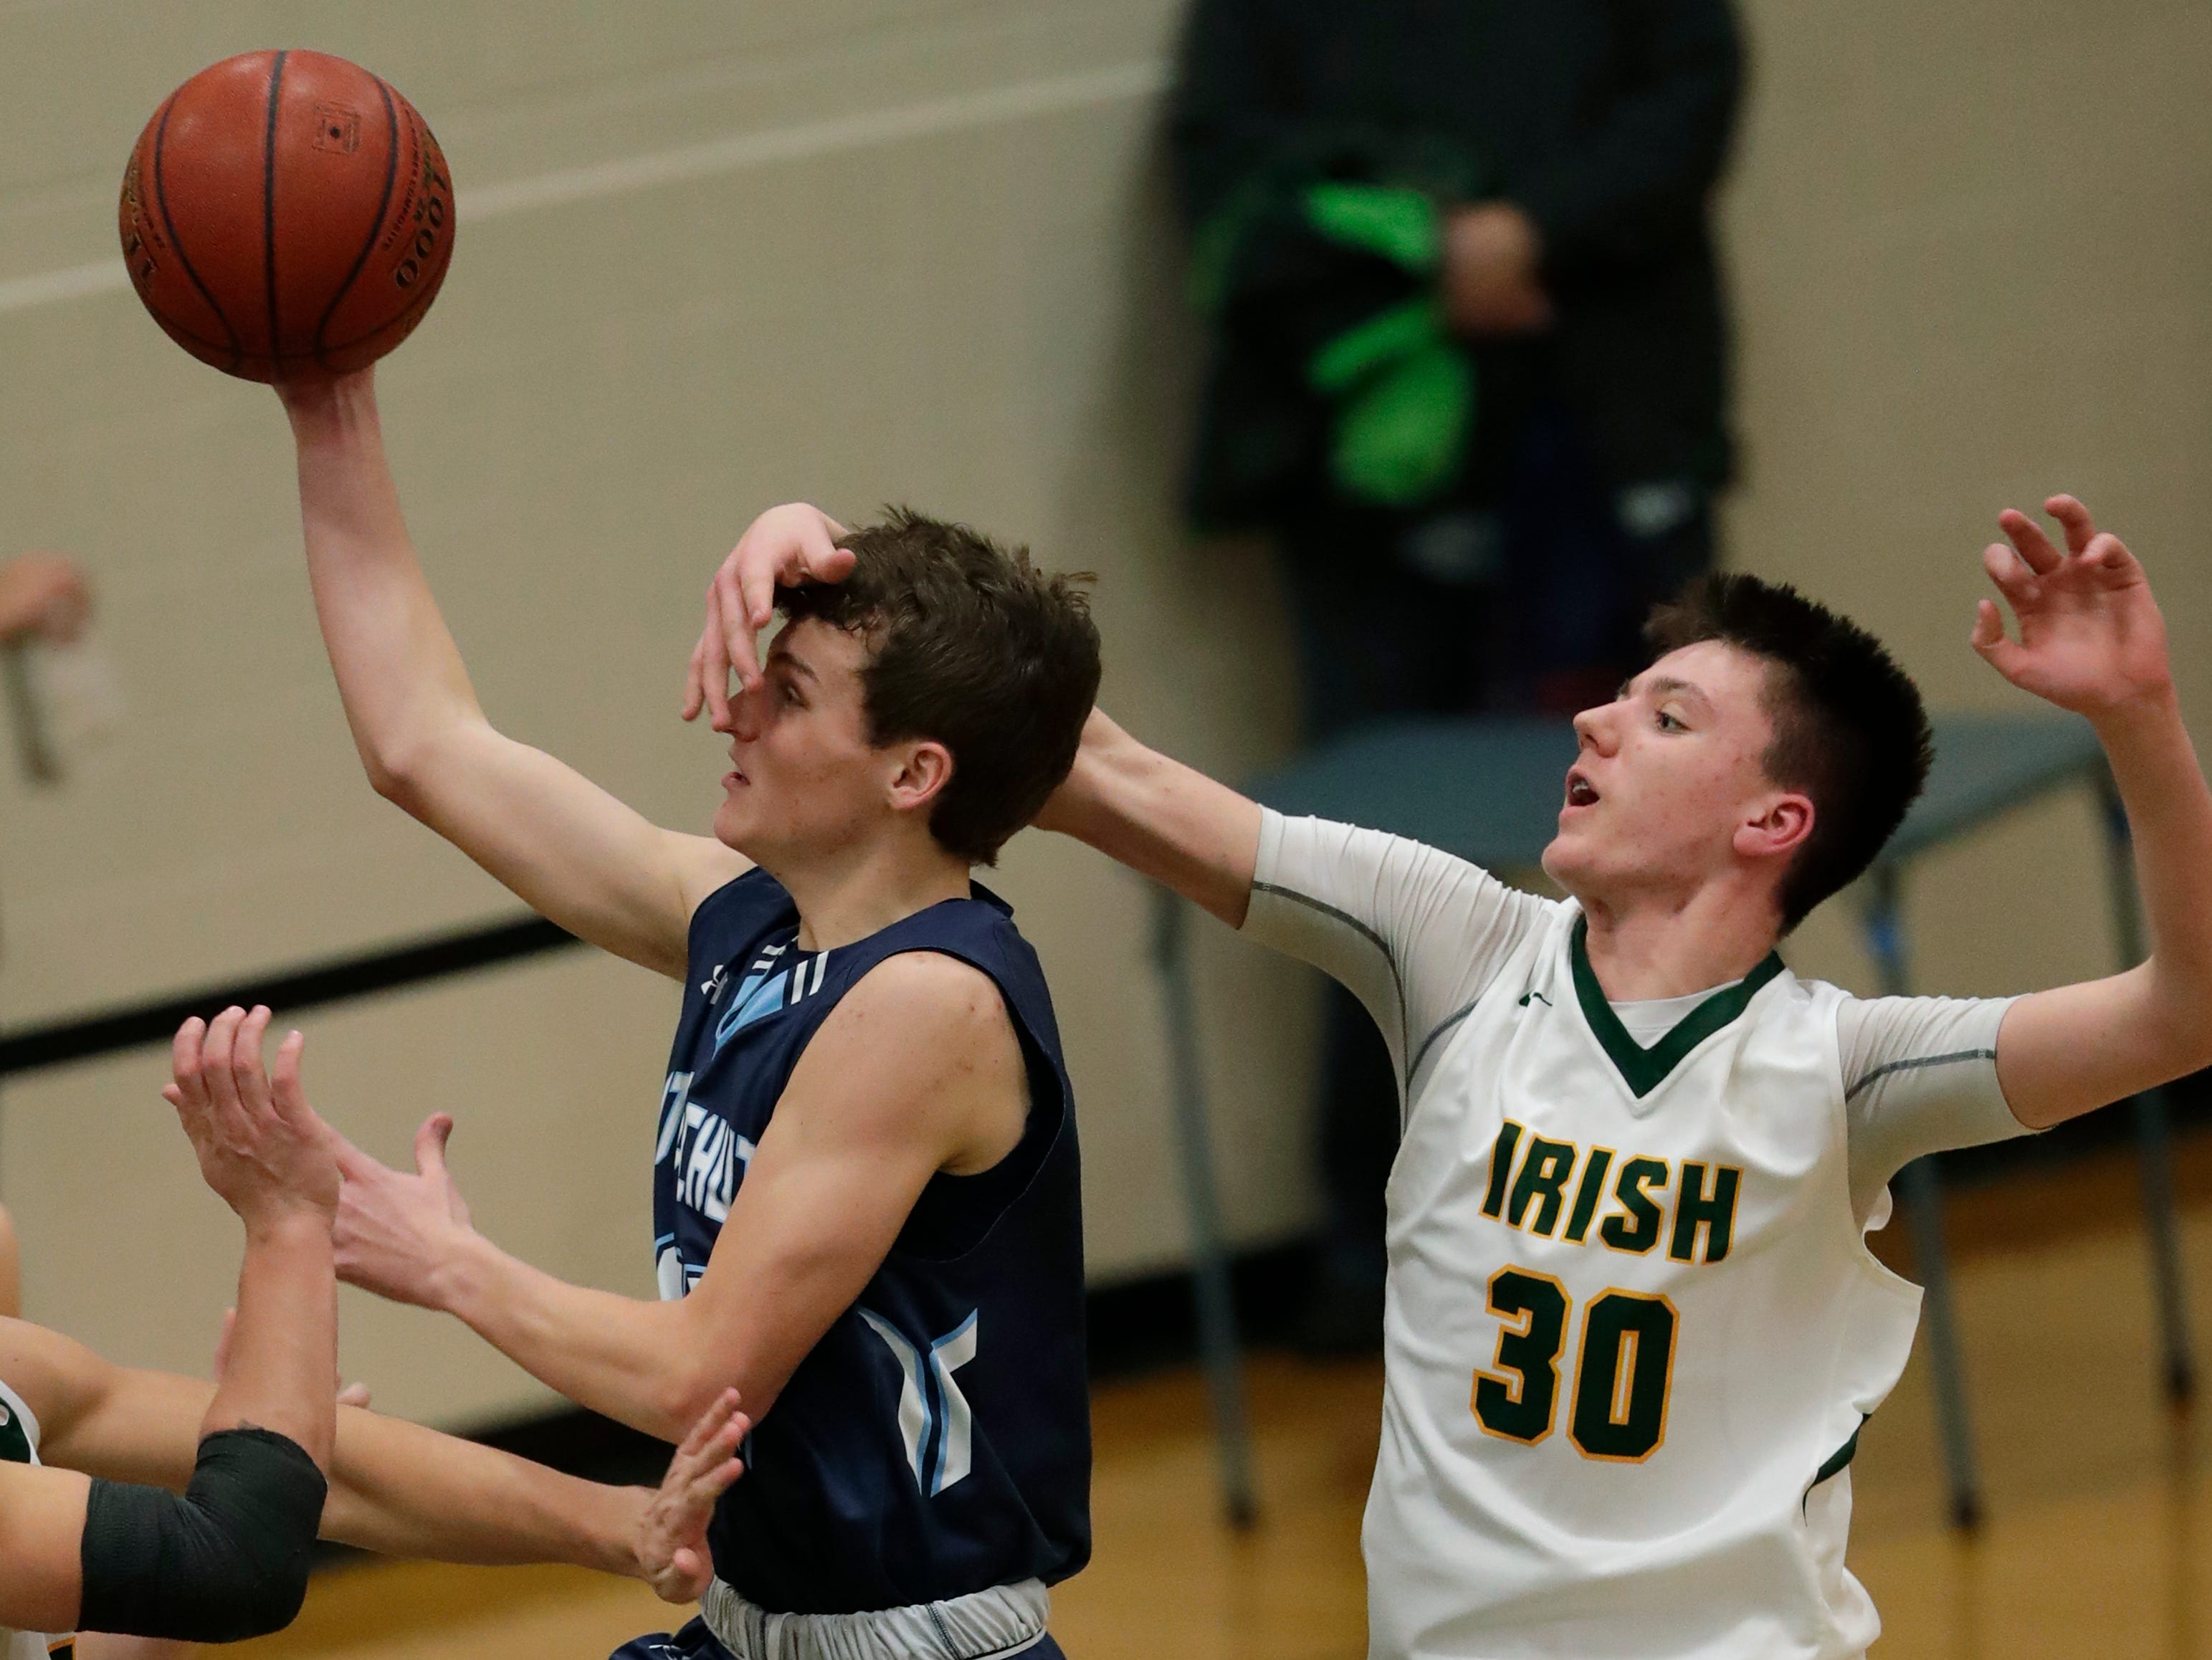 Little Chute High School's Logan Plate (14) puts up a shot against Freedom High School's Landon VanCalster (30) during their boys basketball game Thursday, December 20, 2018, in Freedom, Wis. Dan Powers/USA TODAY NETWORK-Wisconsin